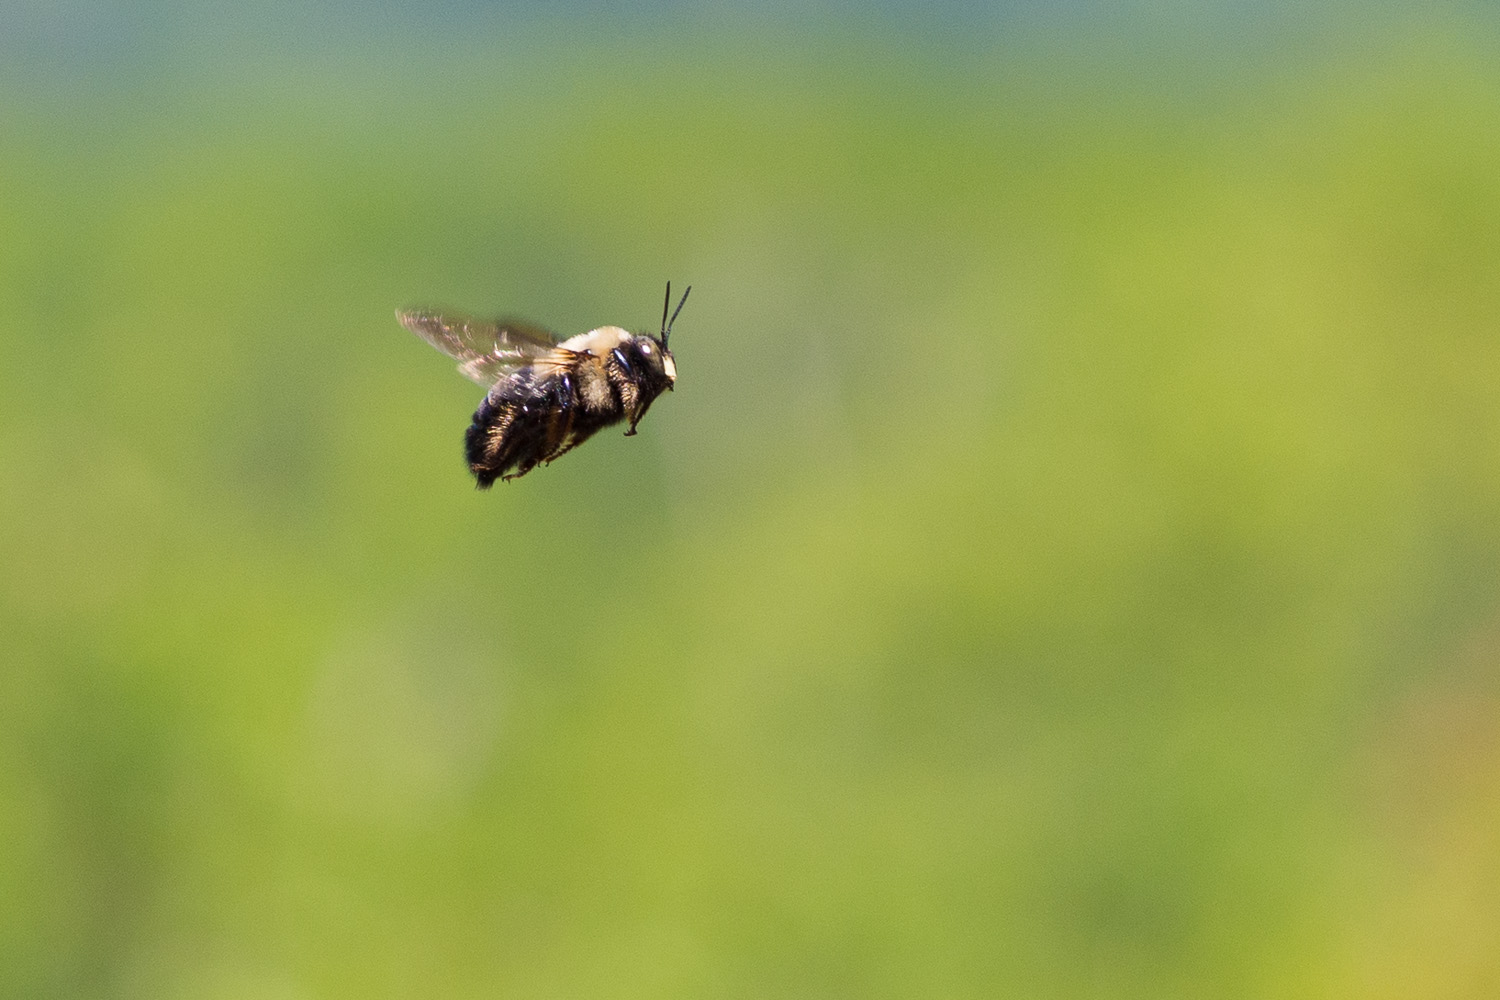 bumblebee in flight